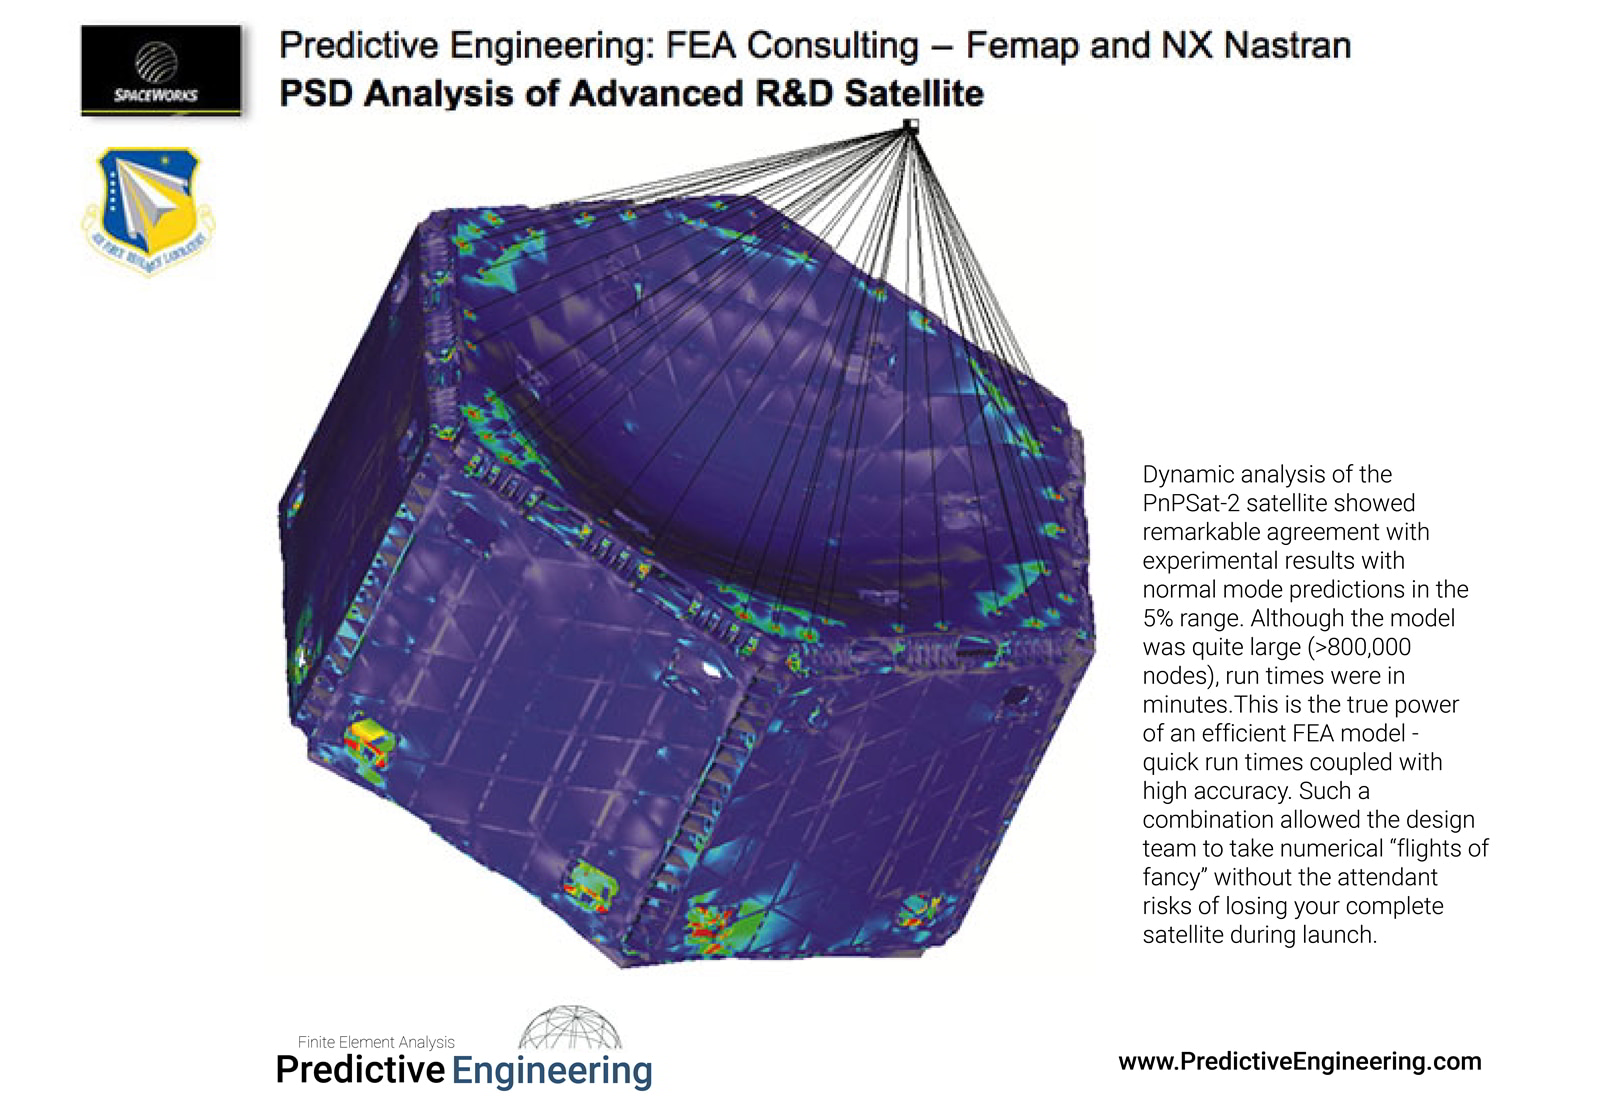 Dynamic analysis of the PnPSat-2 satellite showed remarkable agreement with experimental results with normal mode predictions in the 5% range - Predictive Engineering FEA Consulting Services